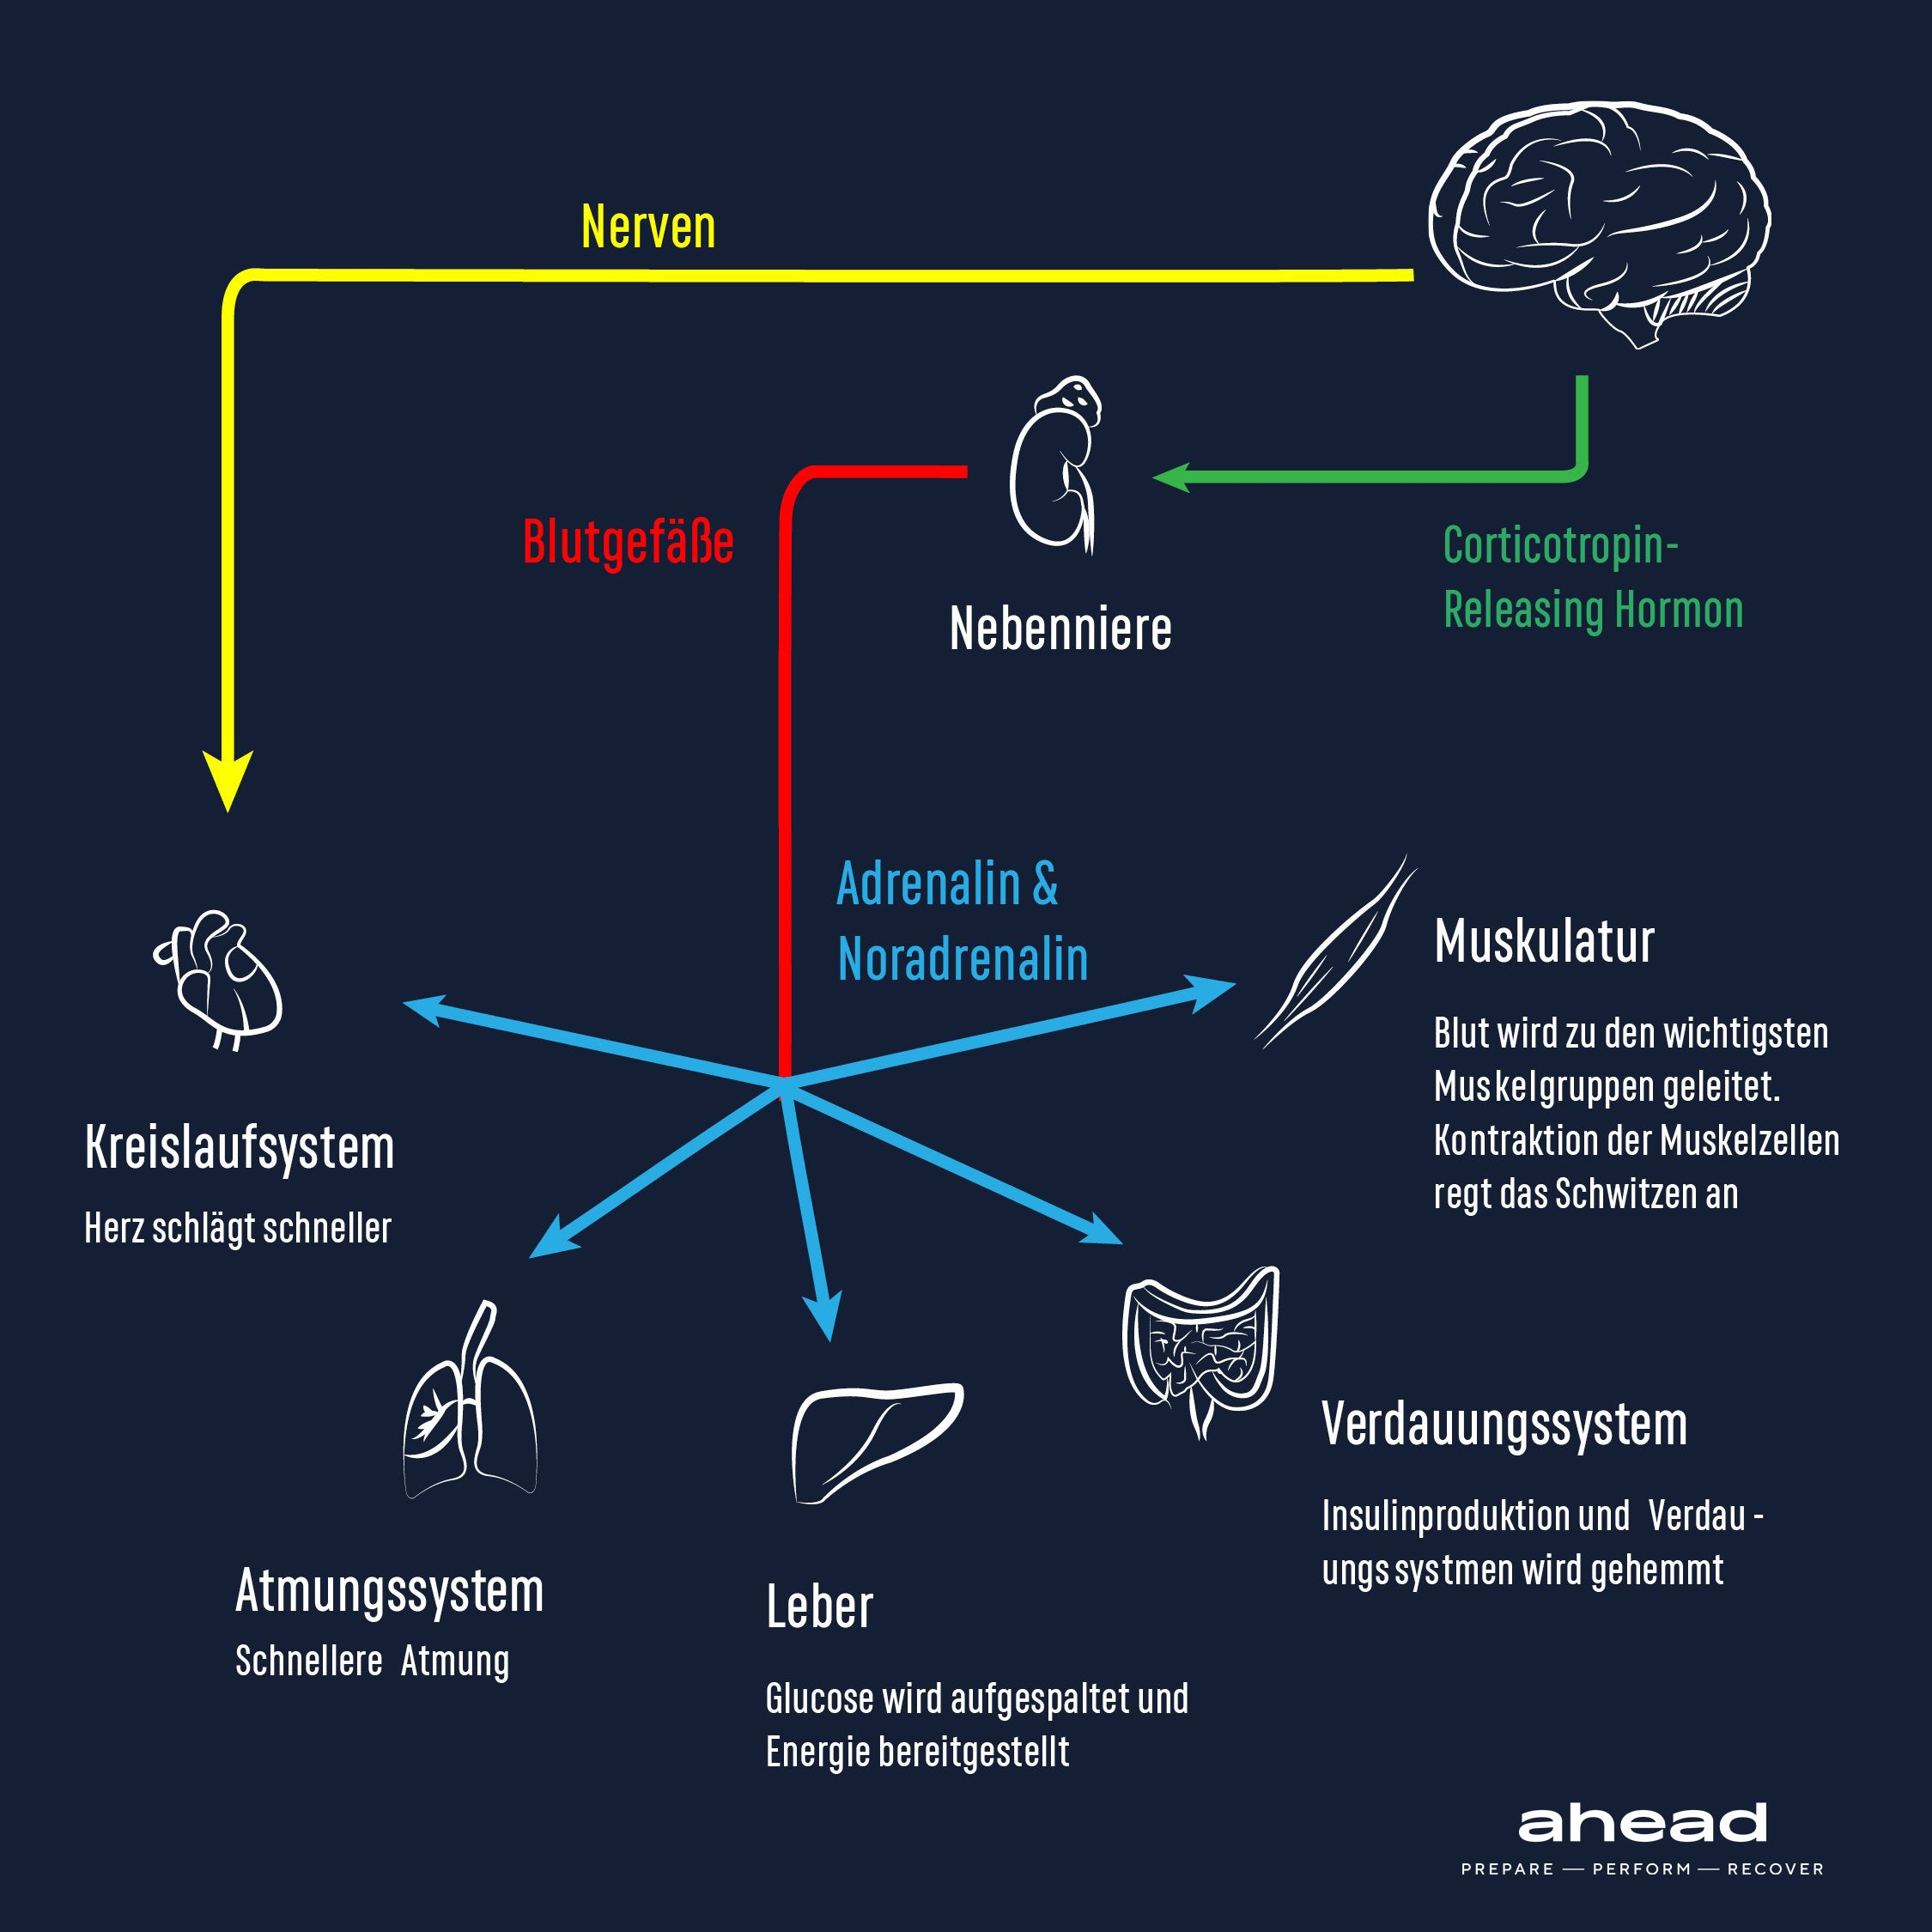 Adrenaline and Noradrenaline: How the neurotransmitters work in your body